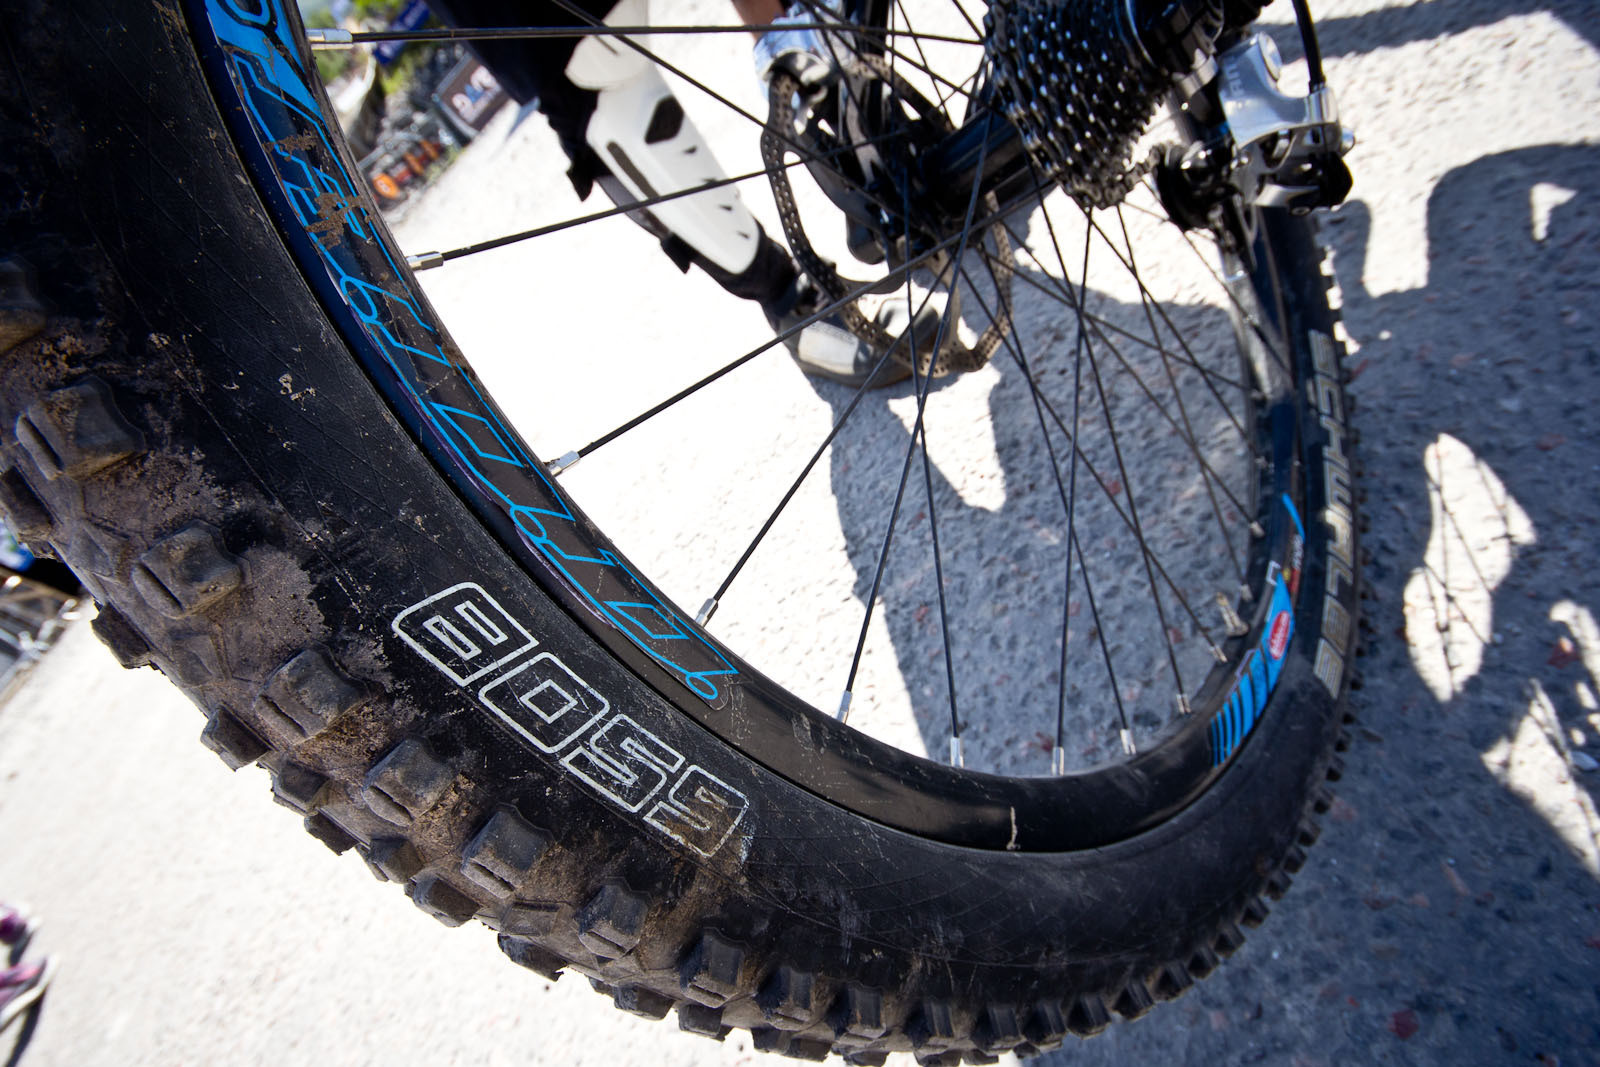 Ben Reid's 650B Schwalbe Rubber - 24 Pro DH BIkes from Fort William World Cup - Mountain Biking Pictures - Vital MTB